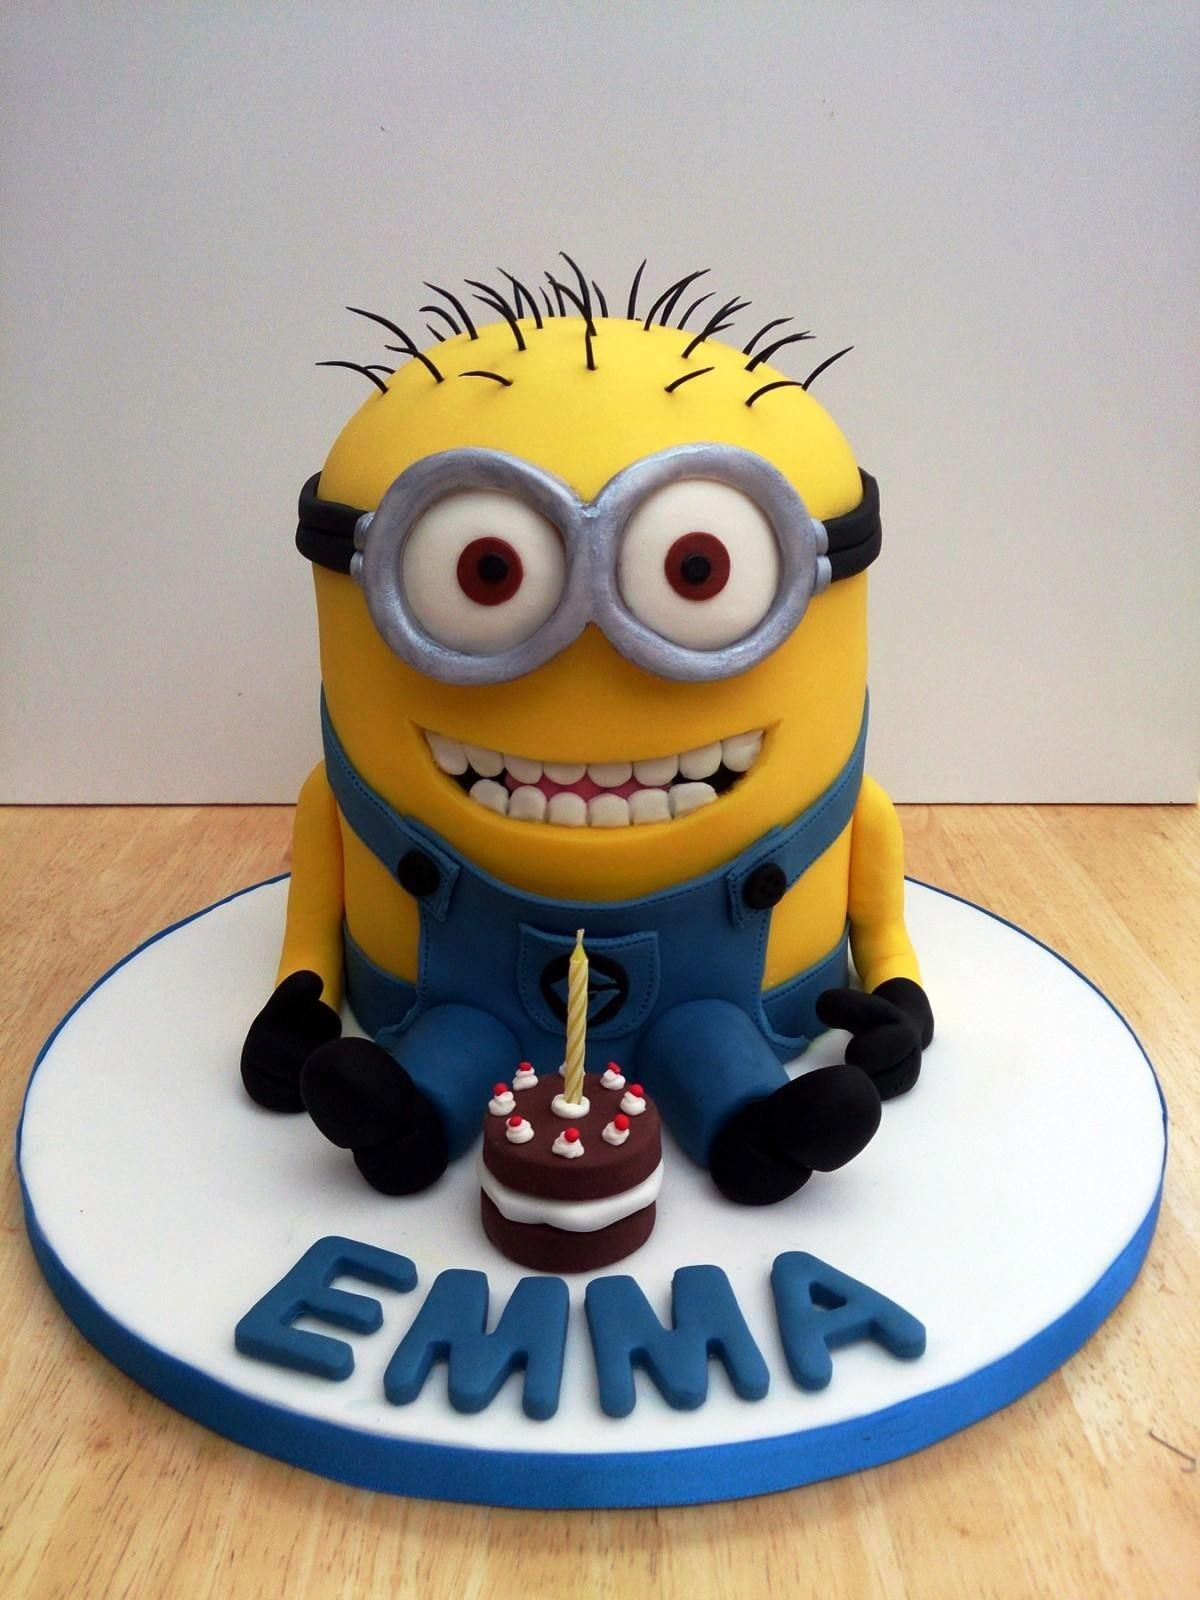 Outstanding Despicable Me Birthday Cake Despicable Me Birthday Cakes Funny Birthday Cards Online Fluifree Goldxyz